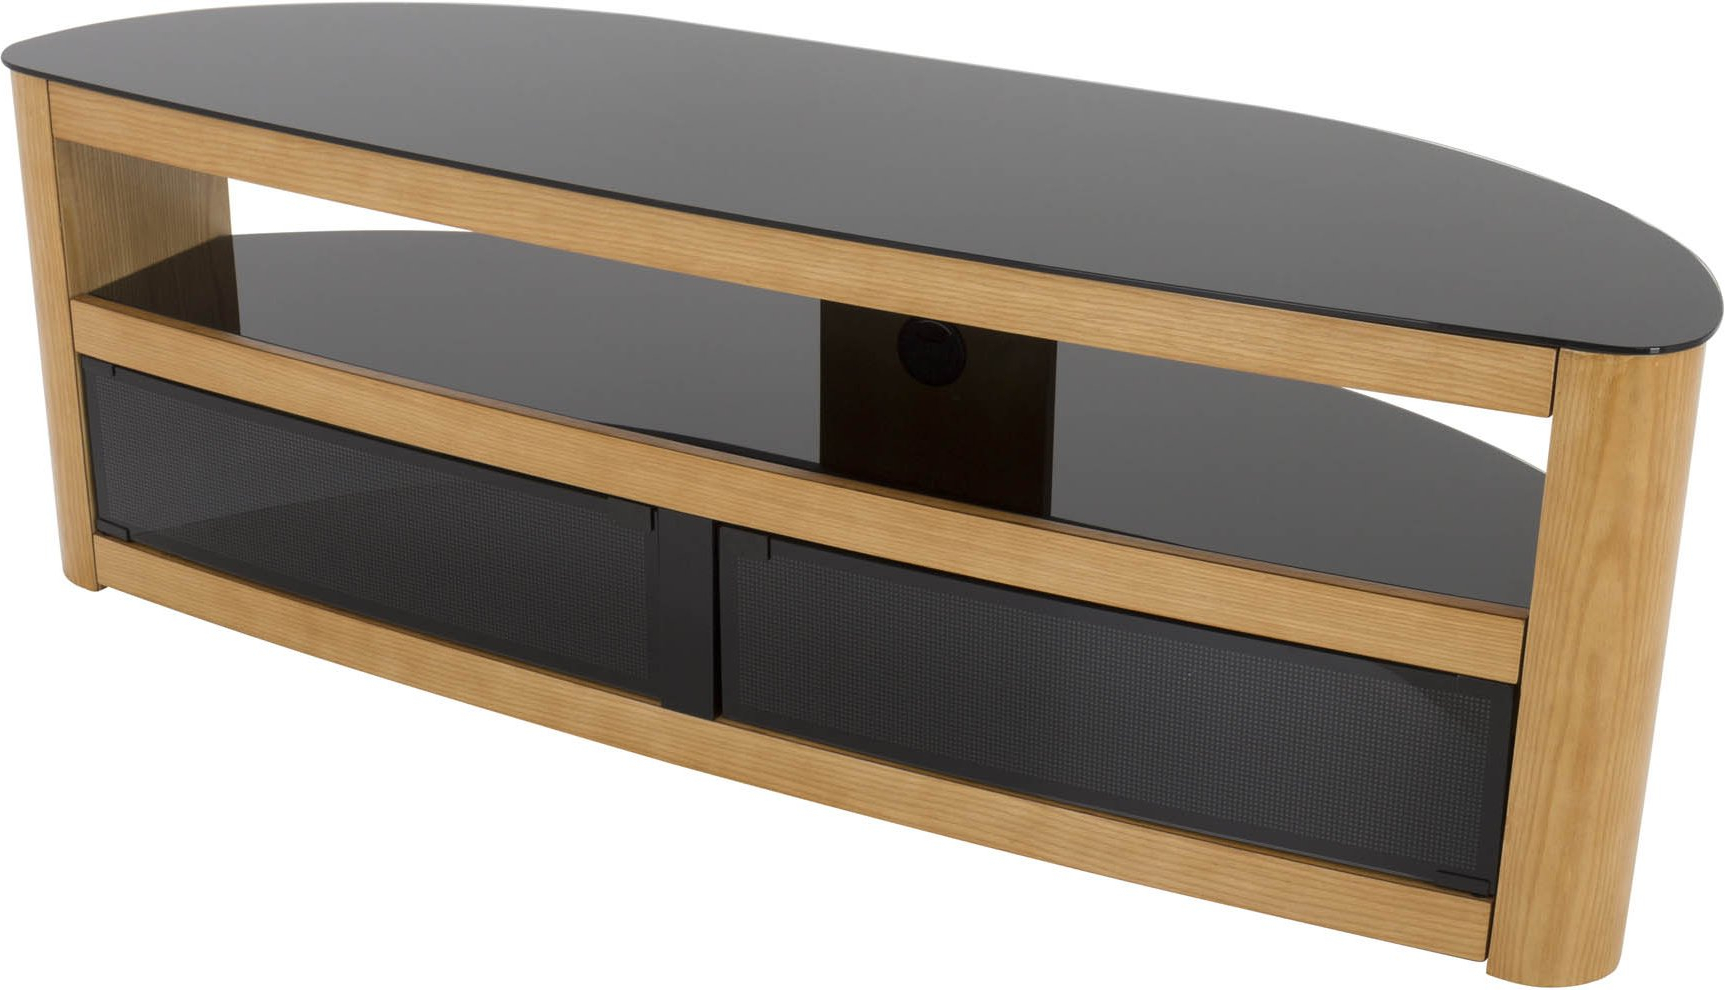 Preferred Solid Wood Entertainment Centers For Flat Screen Tvs Mission Style Intended For Hardwood Tv Stands (View 12 of 20)